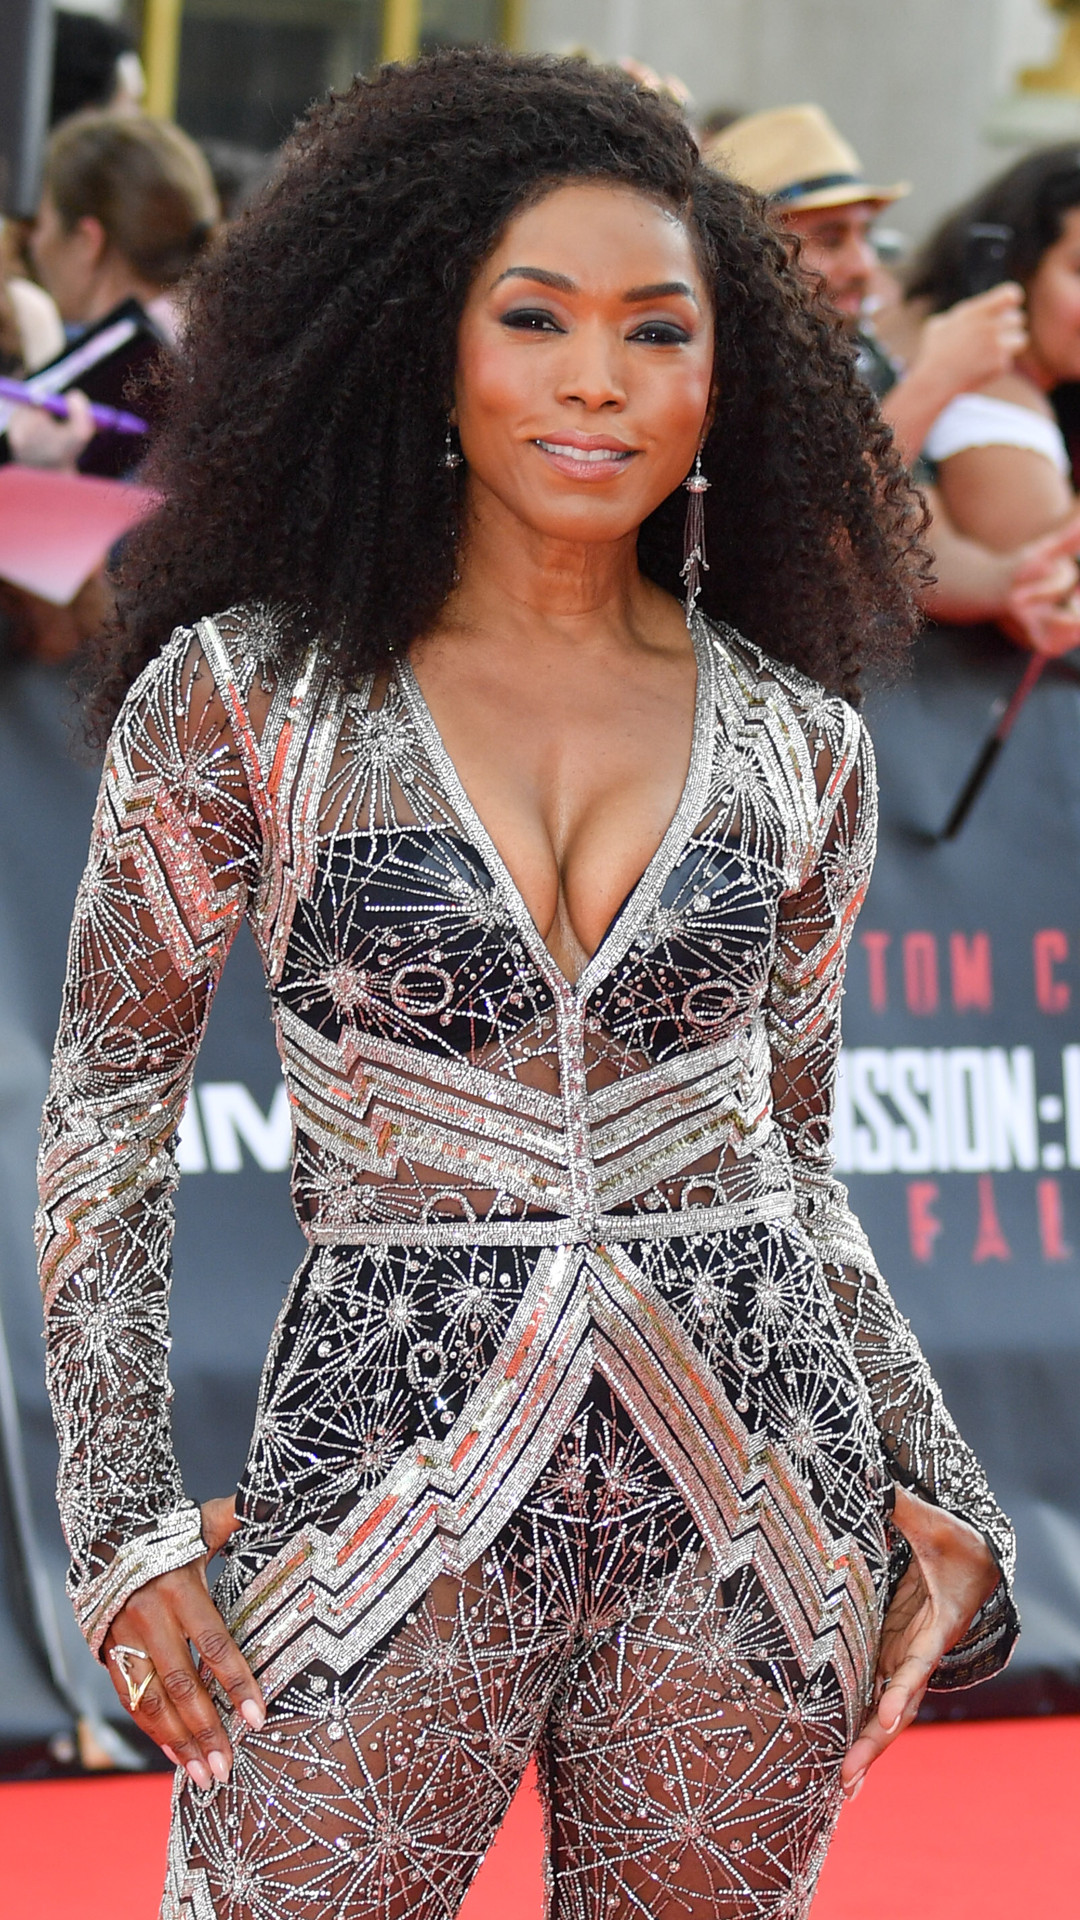 Angela Bassett, Mission: Impossible - Fallout, premiere